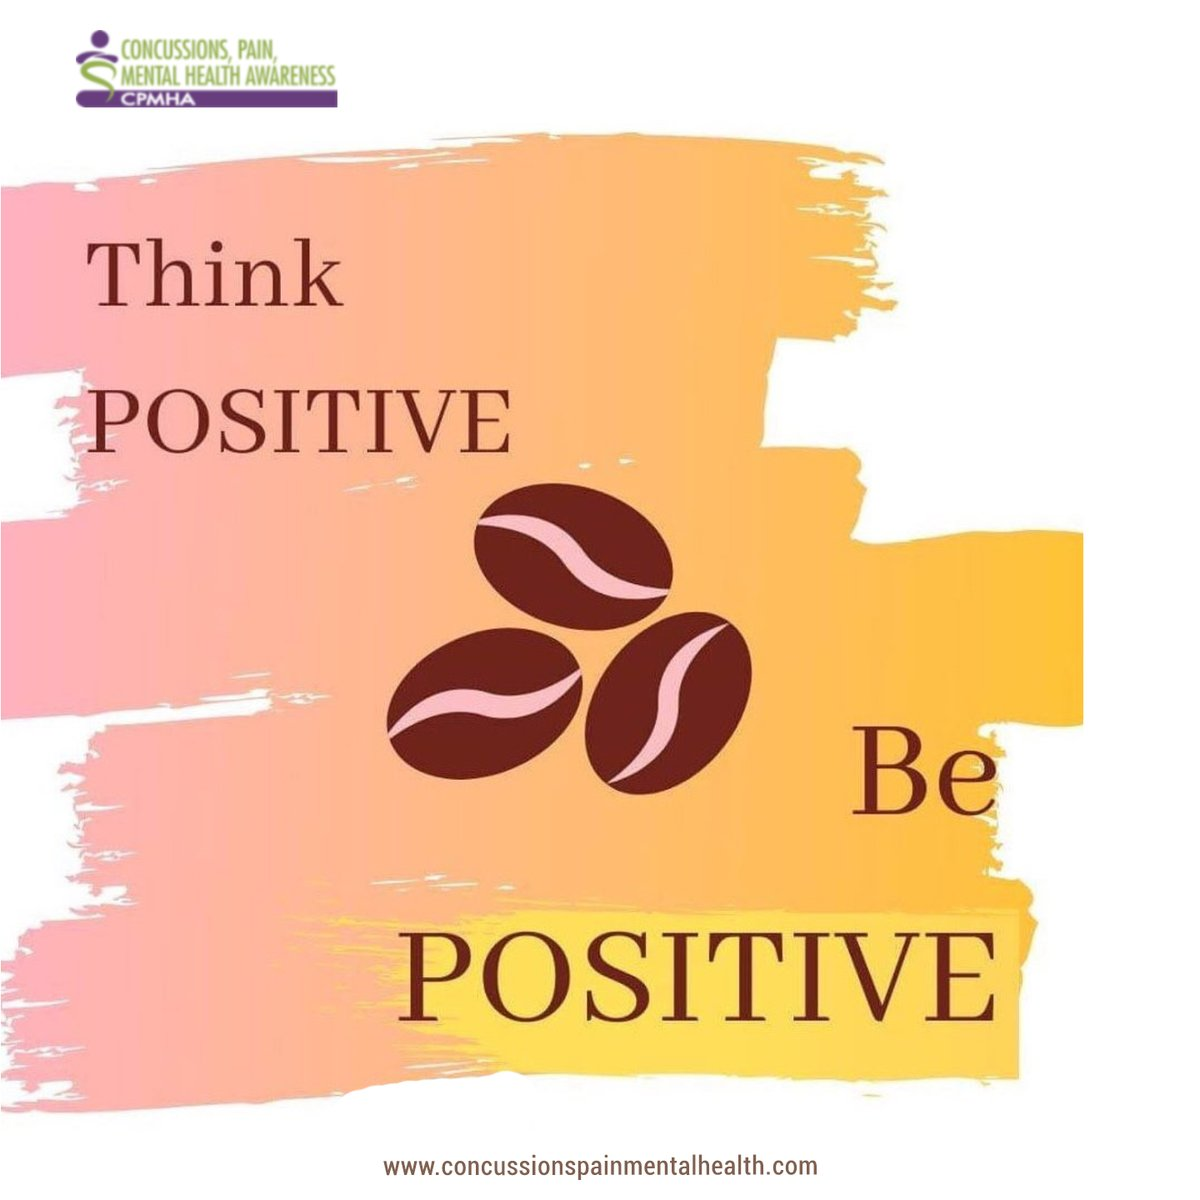 You are what you think. Start thinking positively  Save this reminder  . . . . #positivemind #thinkpositive #happinessisthekey #successfulminds #positivityisthekey #empowerher #motivationalposts #pursuehappy #innergrowth #positiveaffirmation #startyourday #motivationwall<br>http://pic.twitter.com/fCy5jDOCiG